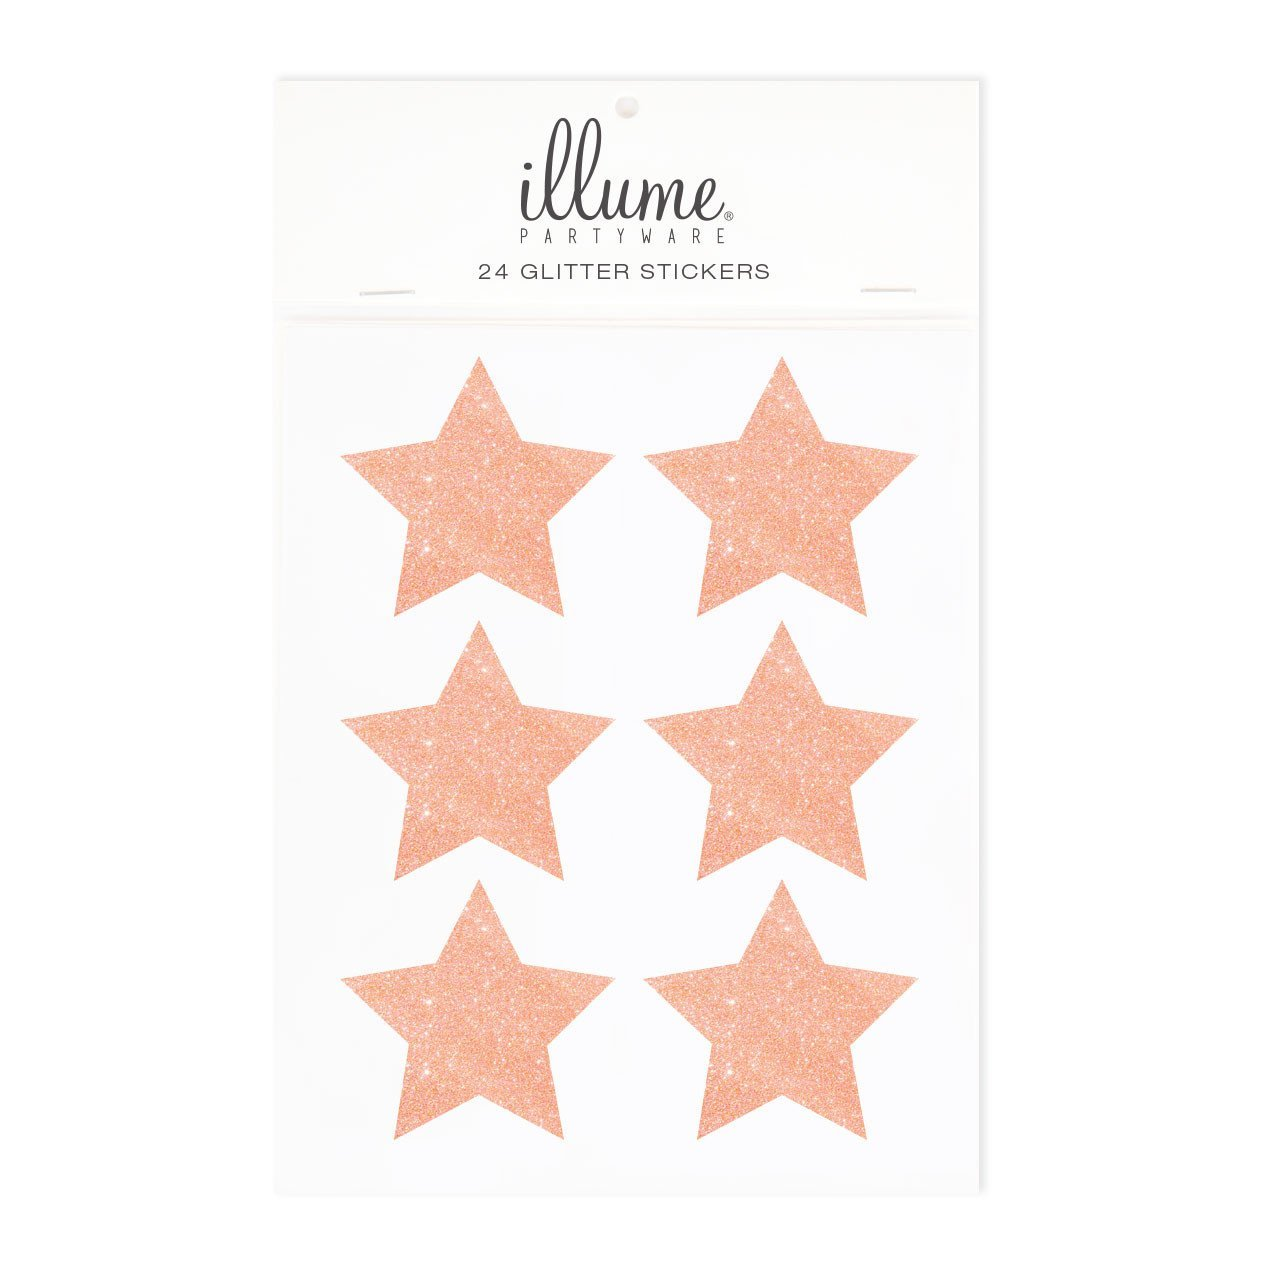 Rose Gold Glitter Star Sticker Seals illume design